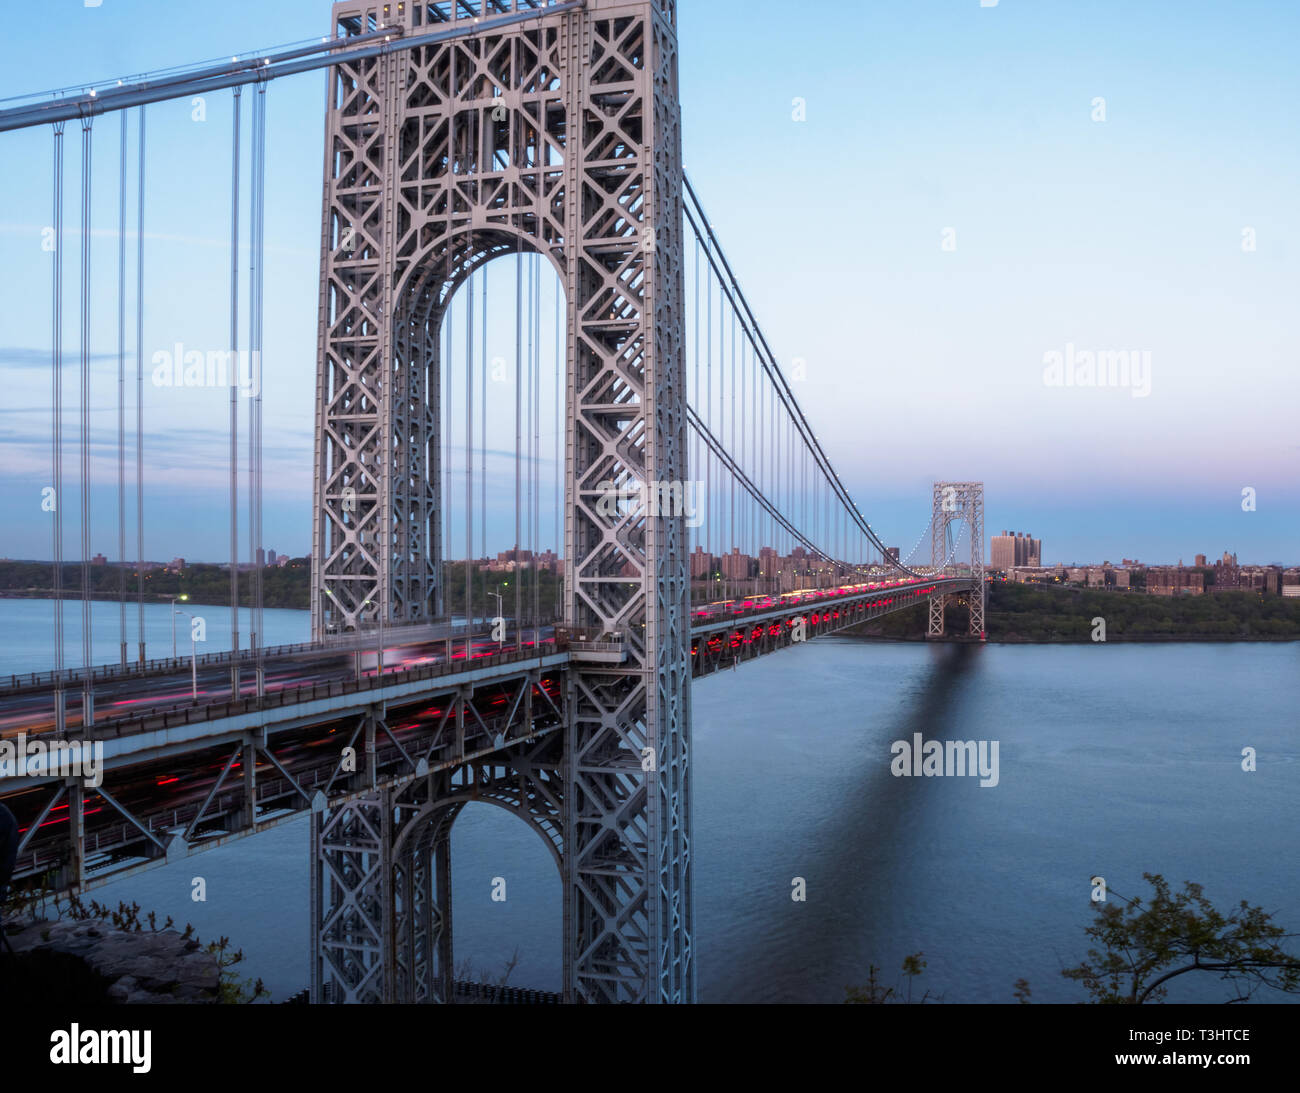 A panoramic view of George Washington Bridge as taken from Fort Lee, New Jersey connecting to NYC across Hudson river - Stock Image